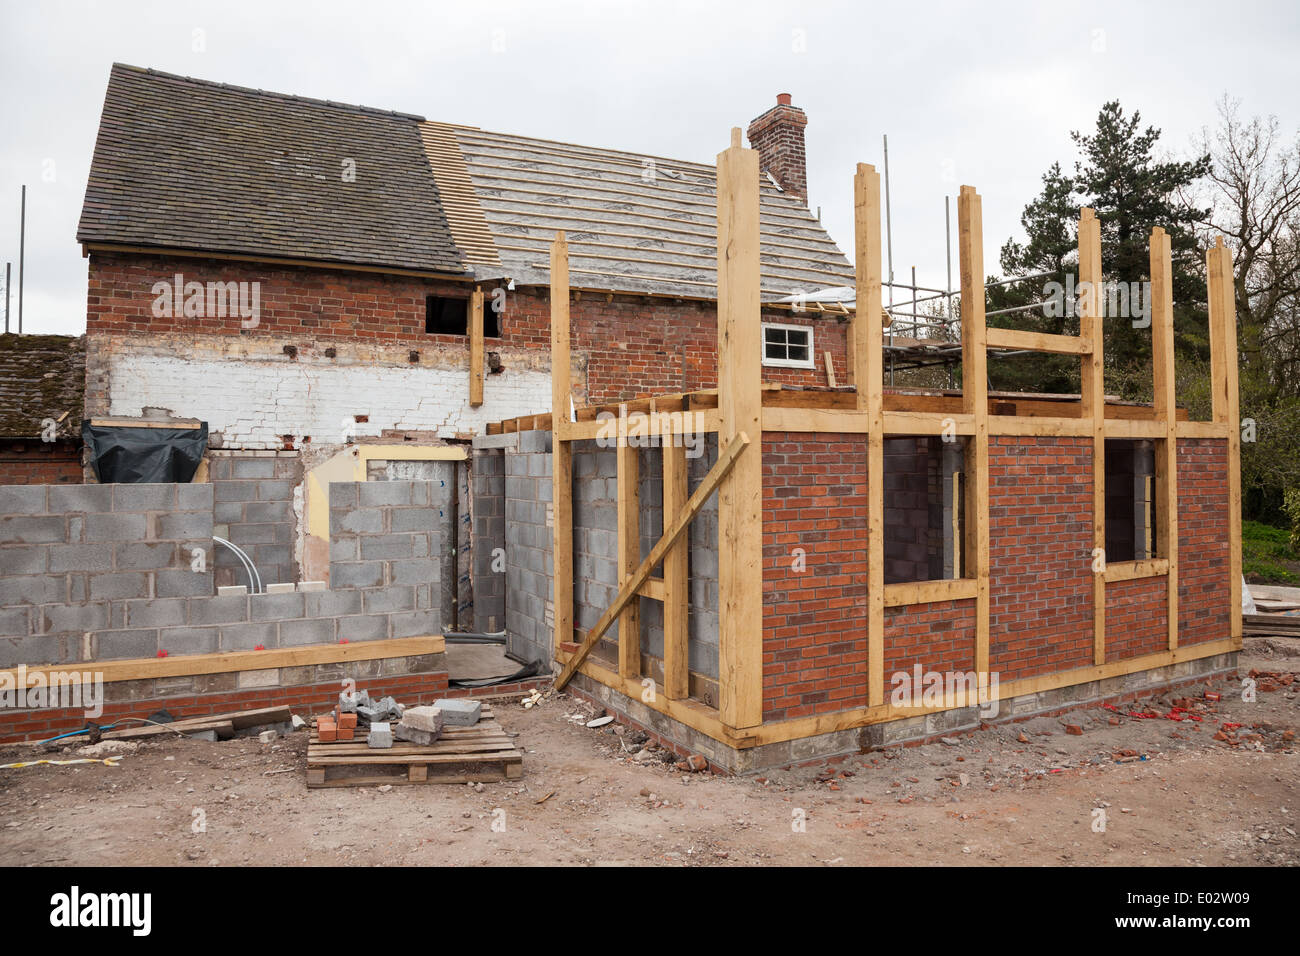 House Extension Stock Photos & House Extension Stock Images - Alamy